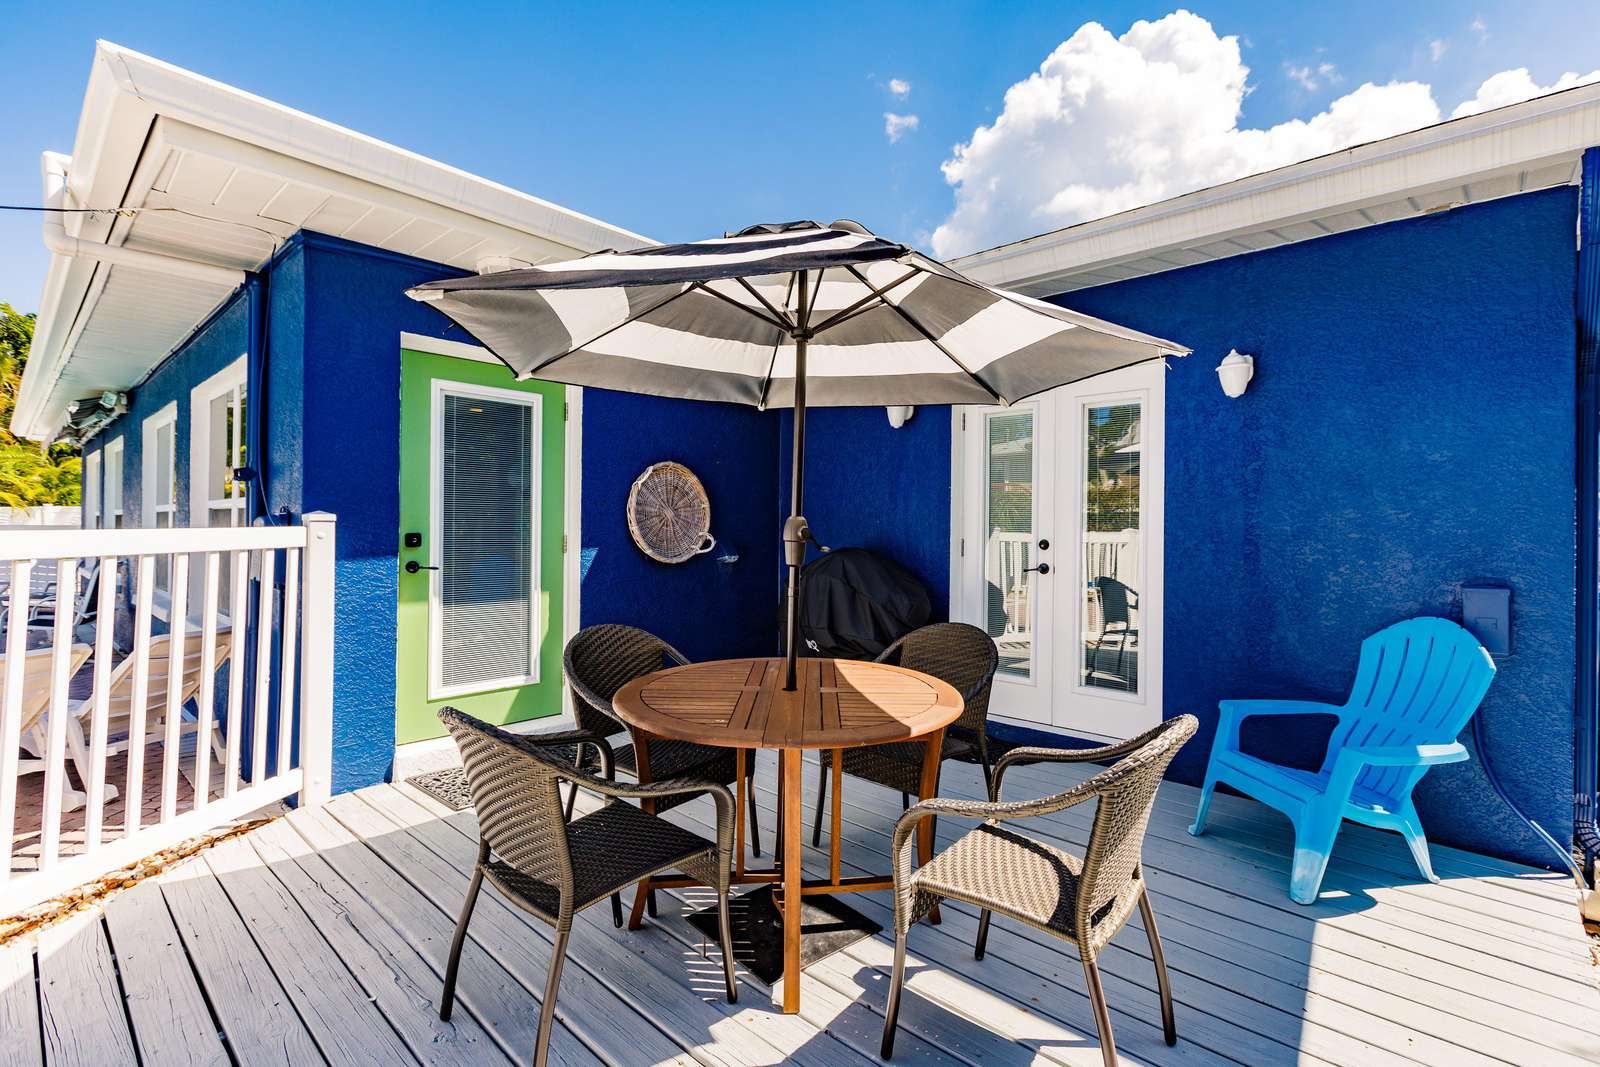 Private patio and grilling area.  Each half of the duplex has their own private space